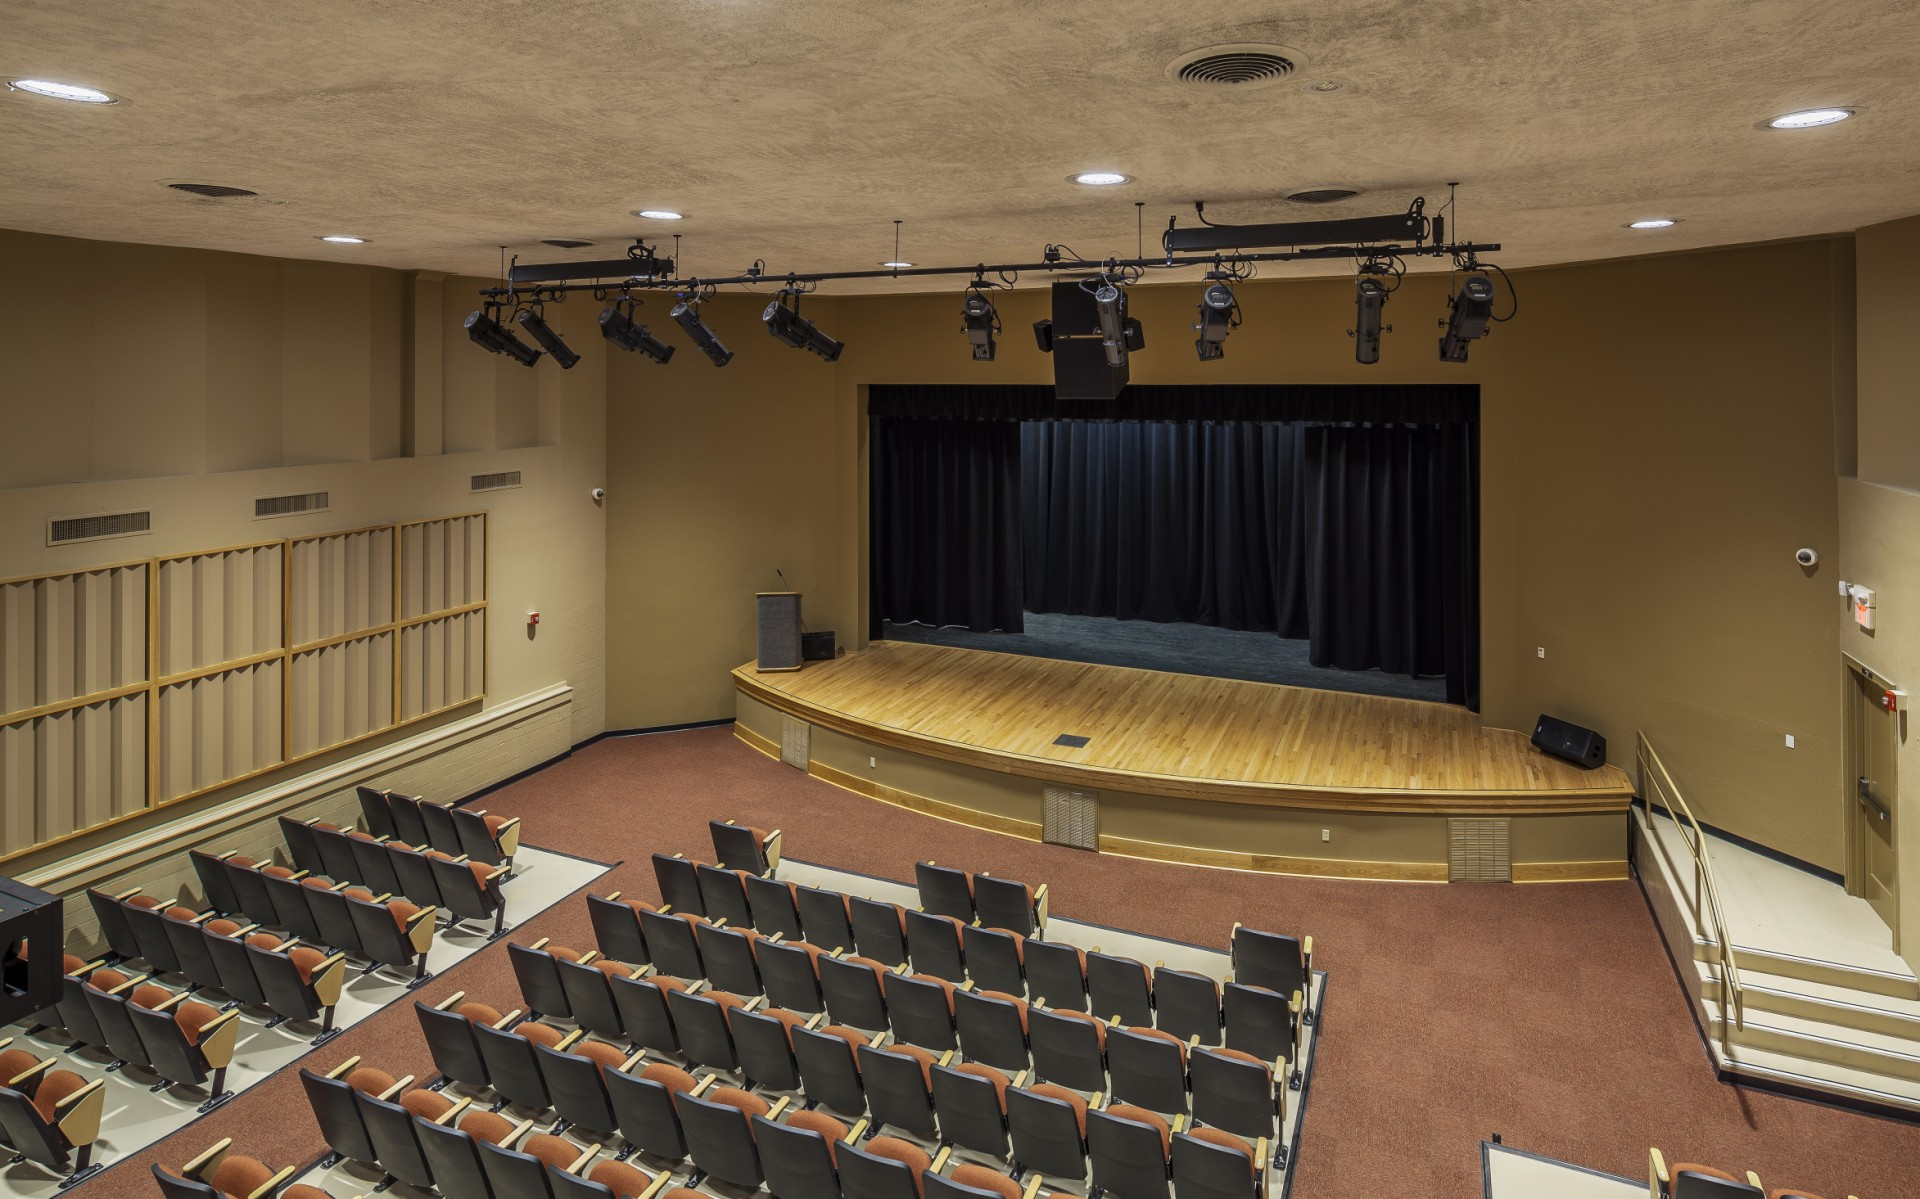 To improve flexibility, and reduce costs, Curtis H. Stout Inc. opted for Lumenpulse luminaires.